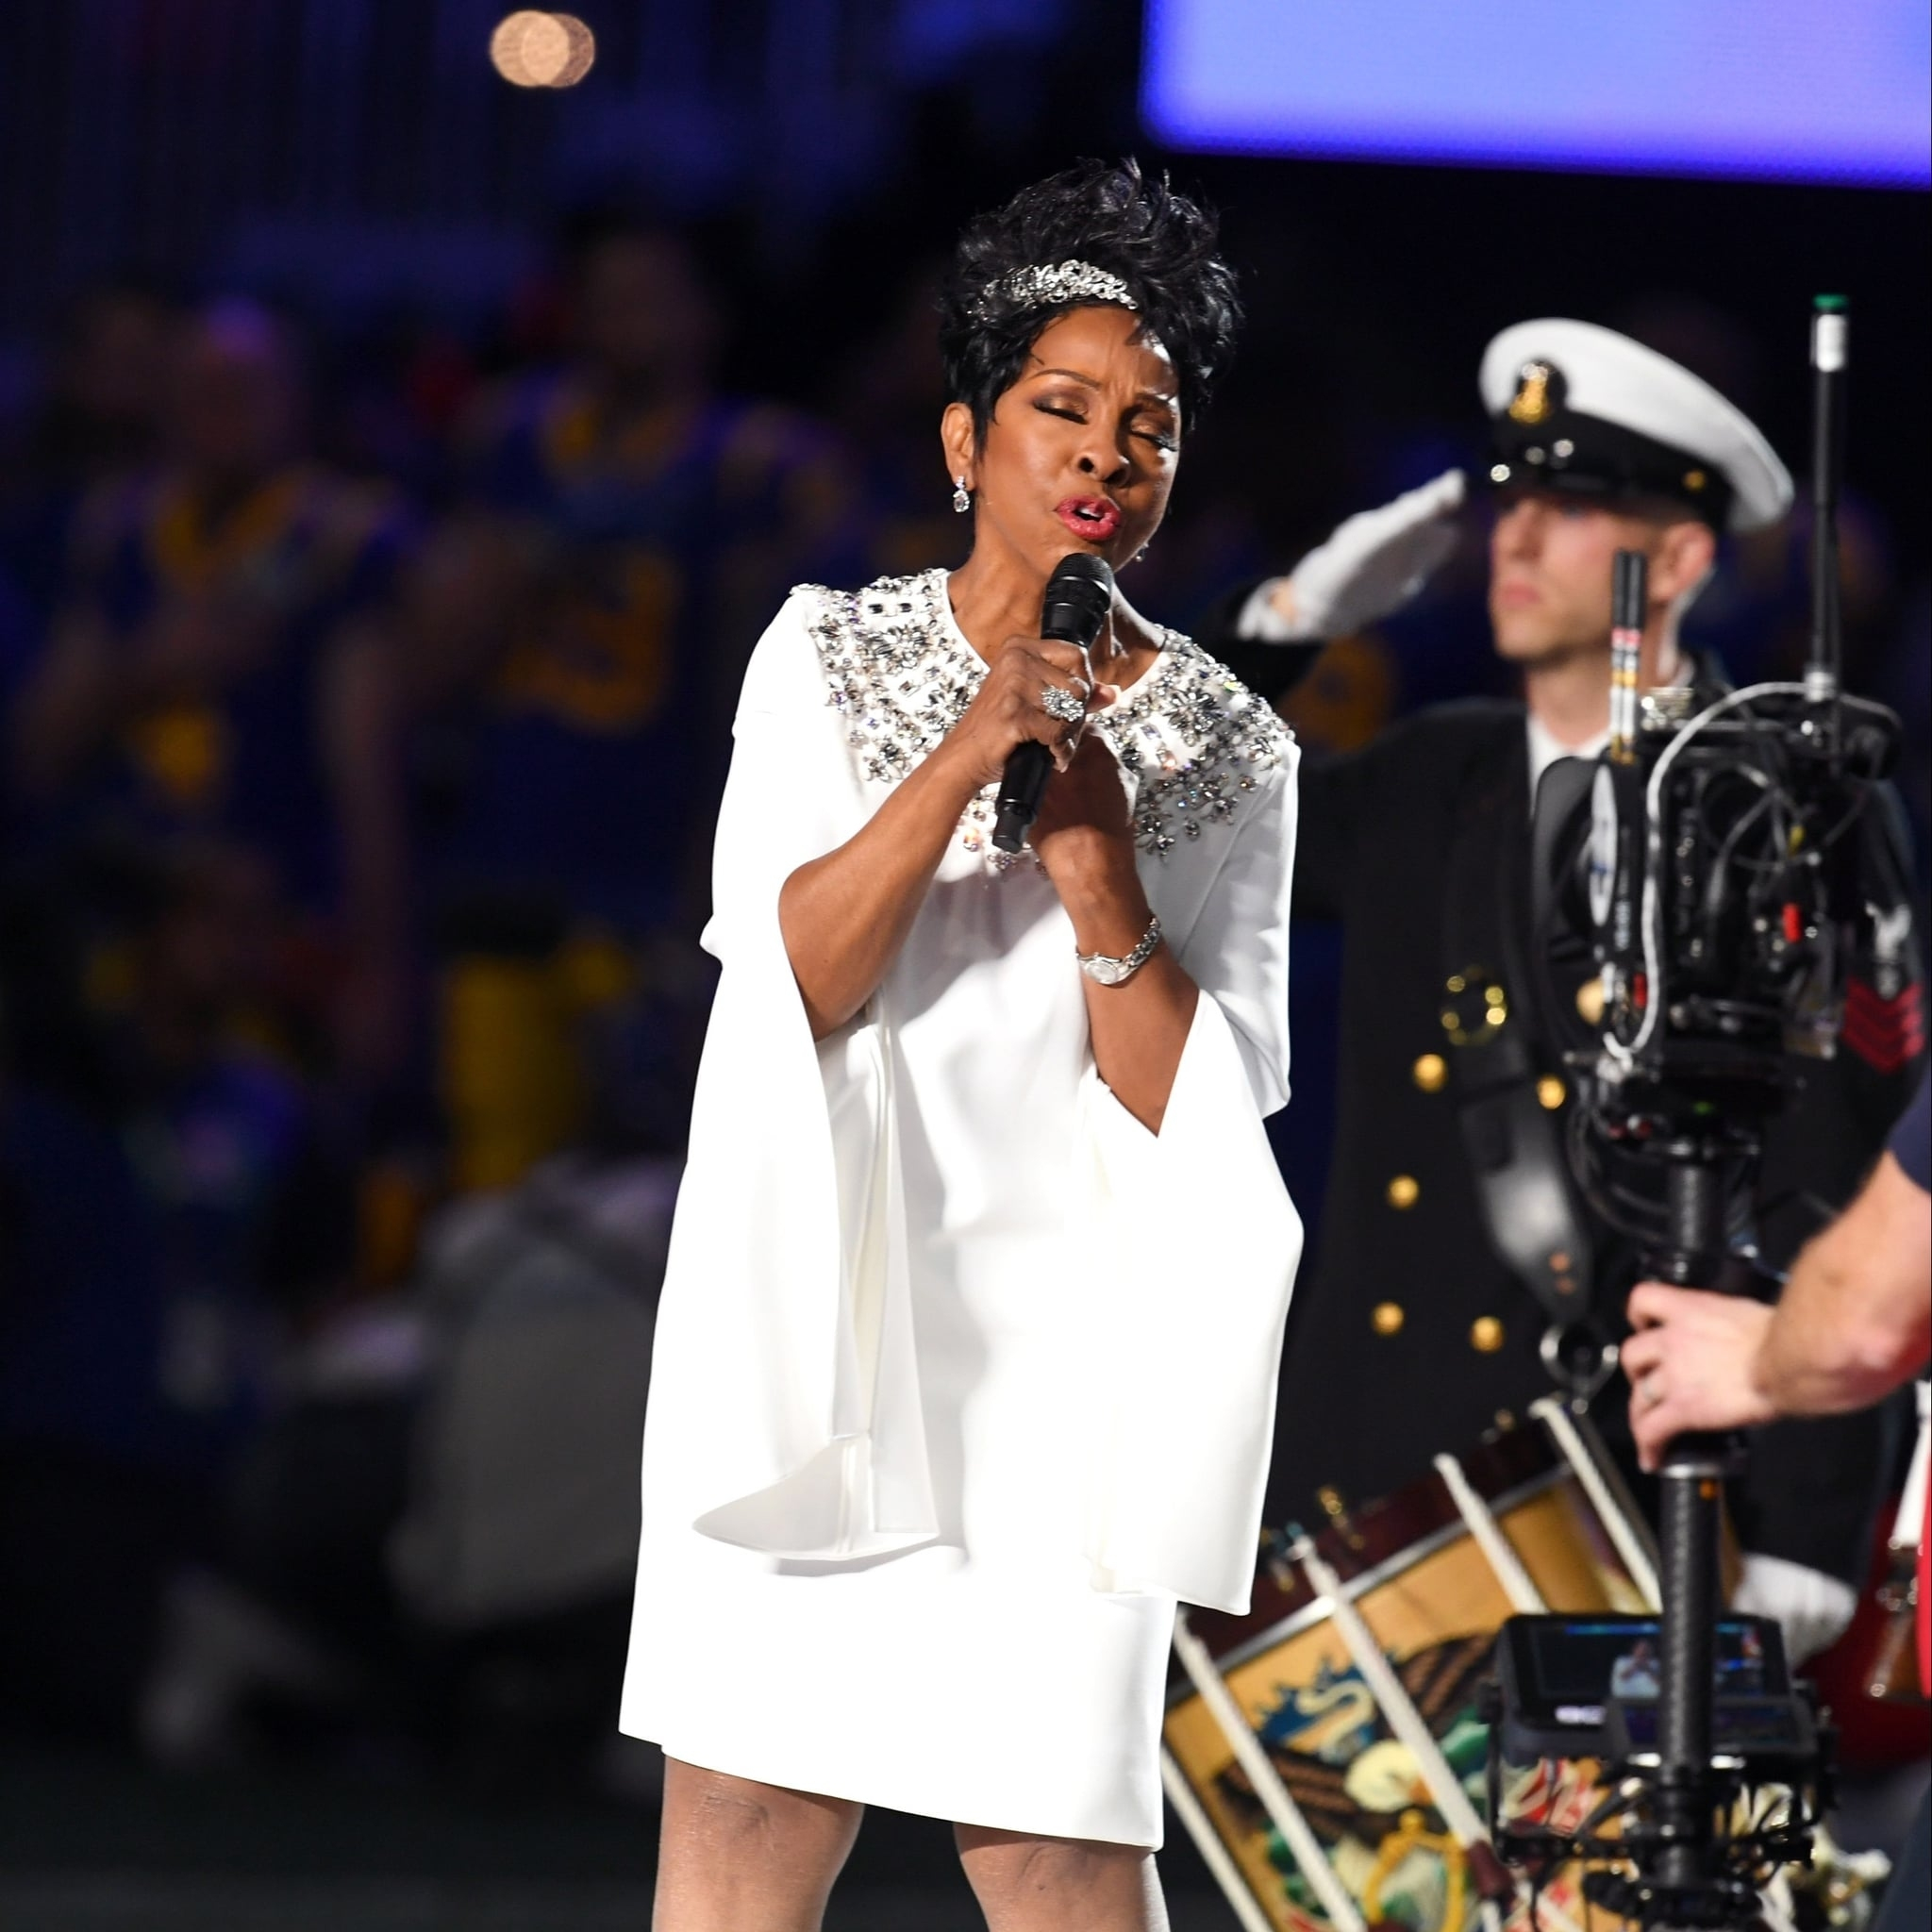 Gladys Knight Sings The National Anthem At Super Bowl 2019 pertaining to Super Bowl Gladys Knight